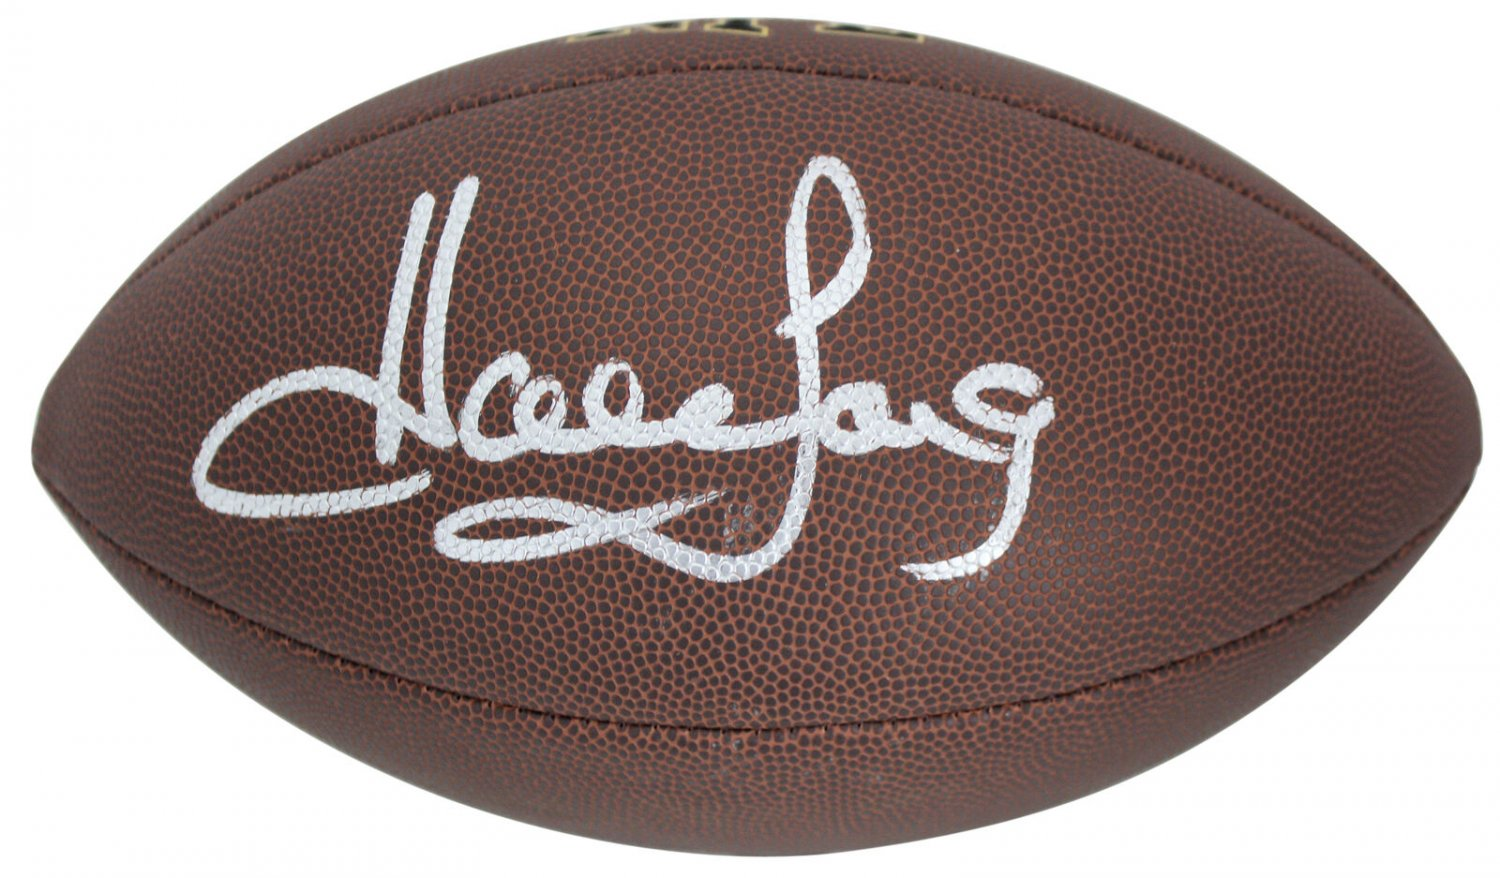 Howie Long Raiders Autographed Signed NFL Wilson Football BECKETT